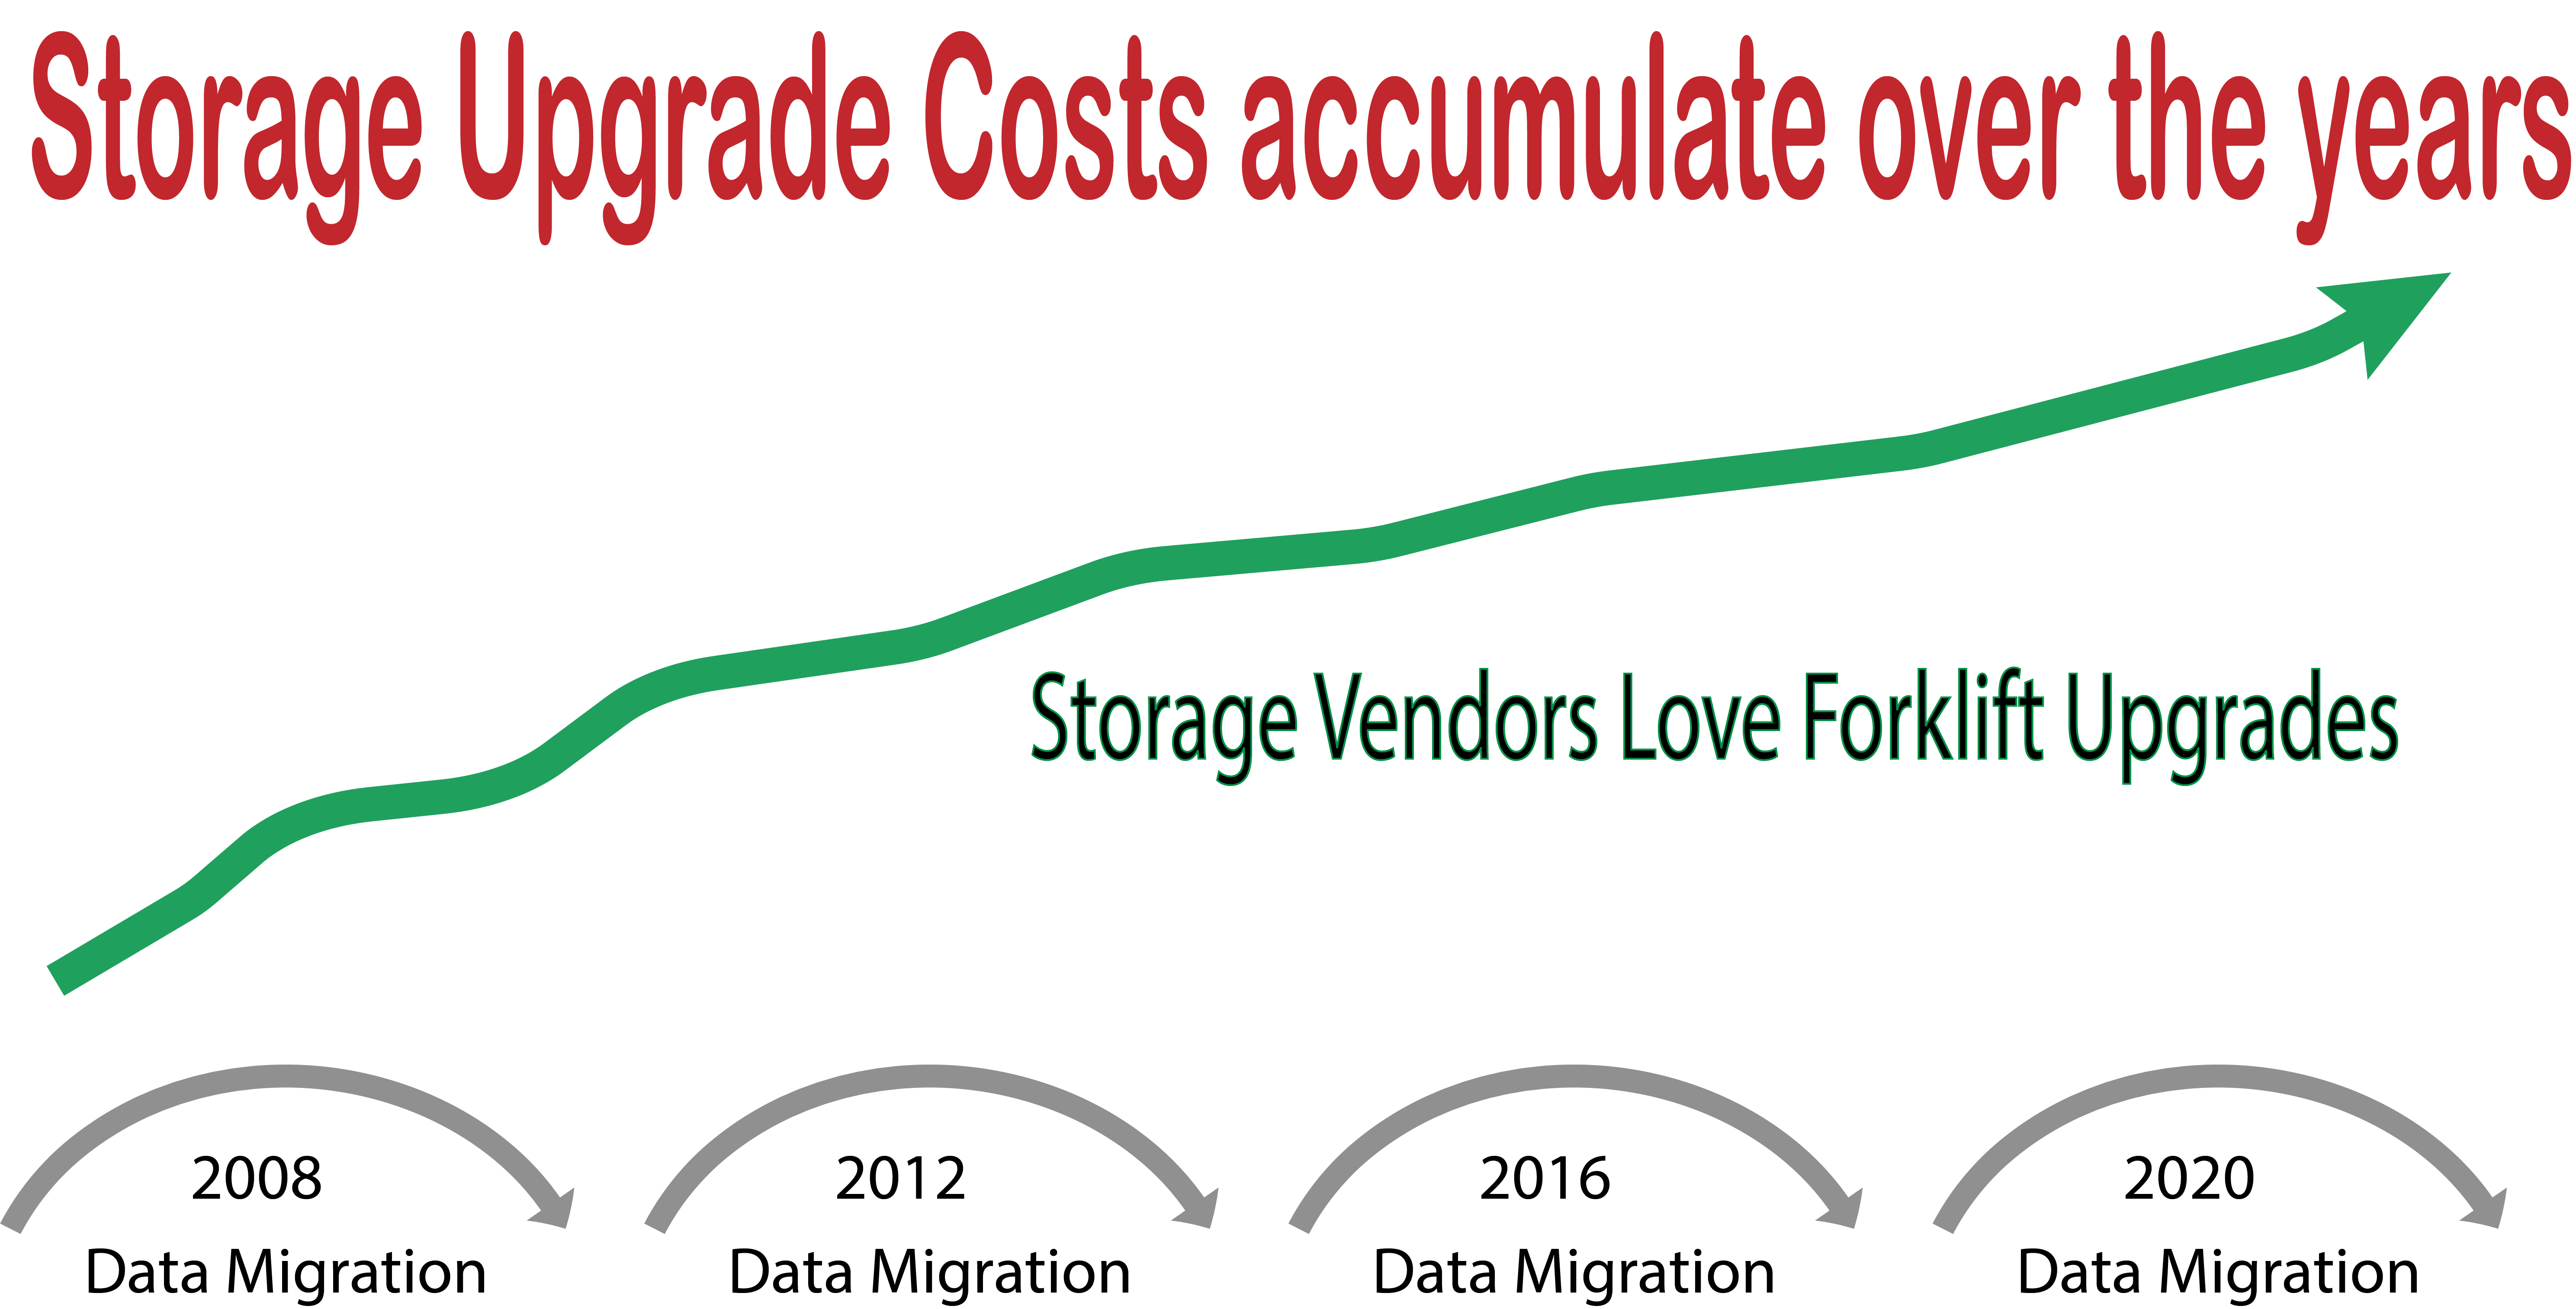 LTO Tape and Disk data migrations accumulate costs of data preservation